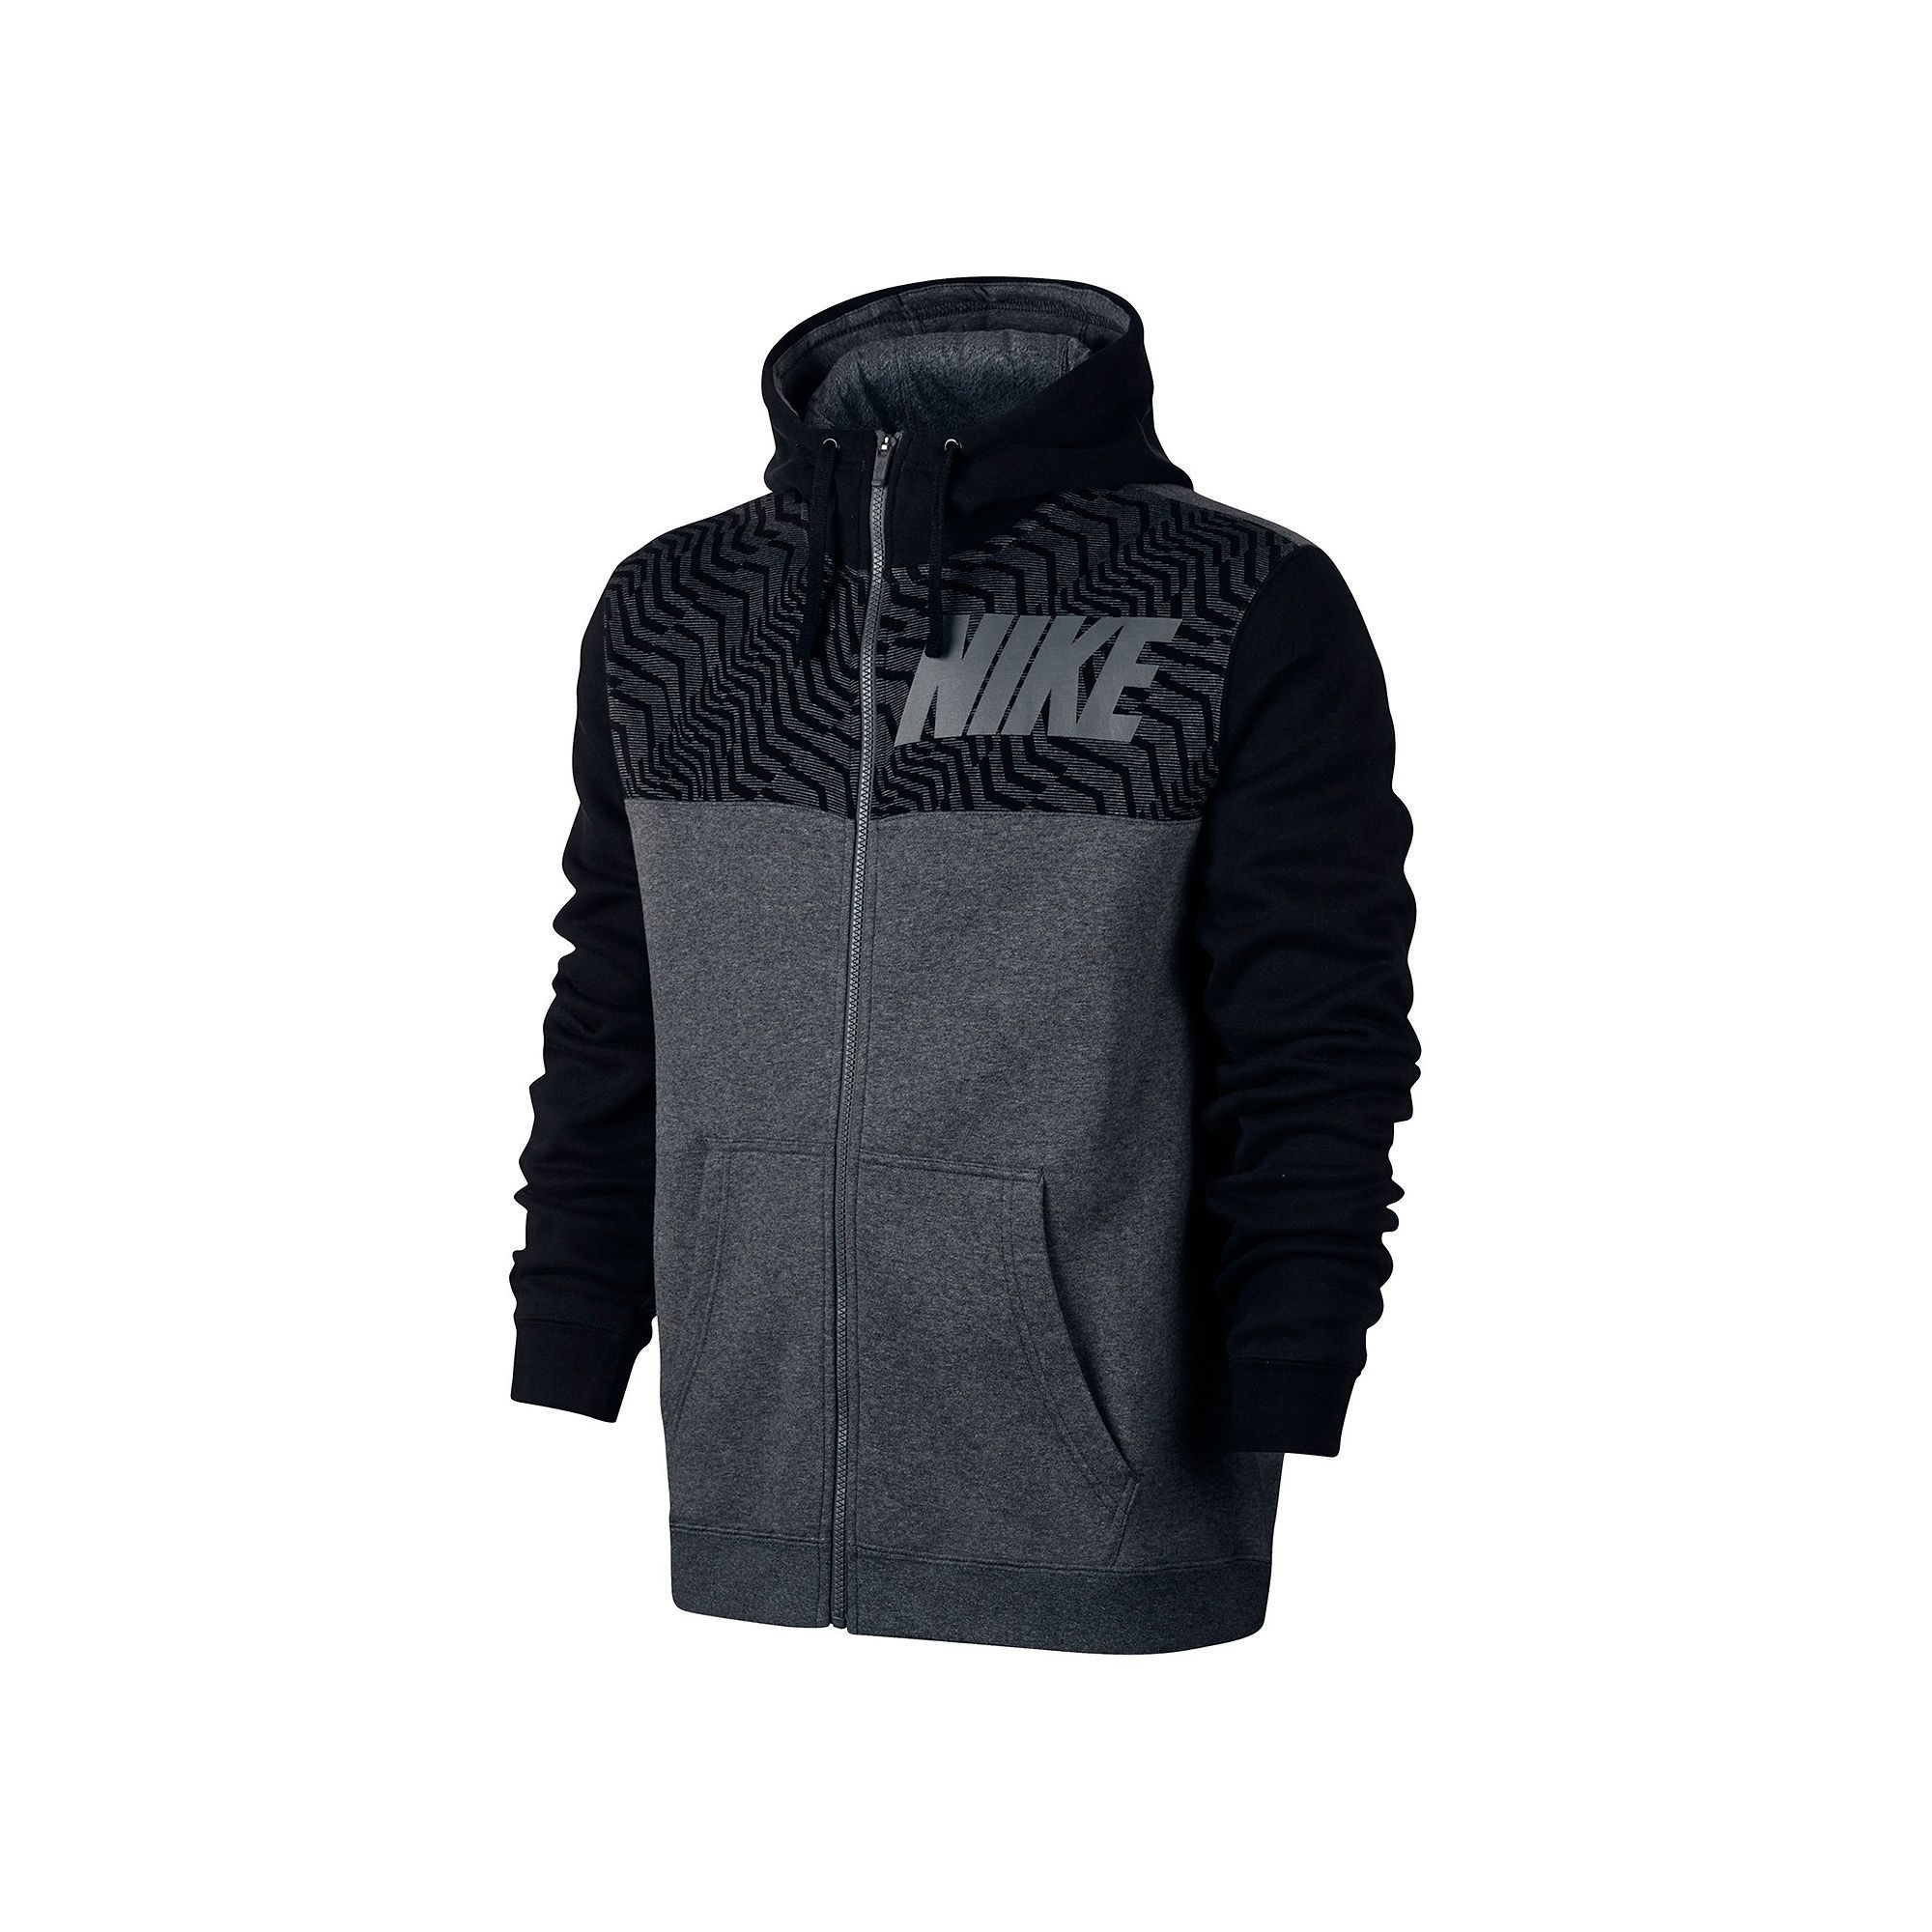 3c462d3b9ffa6e Men s Nike Colorblock Fleece Hoodie